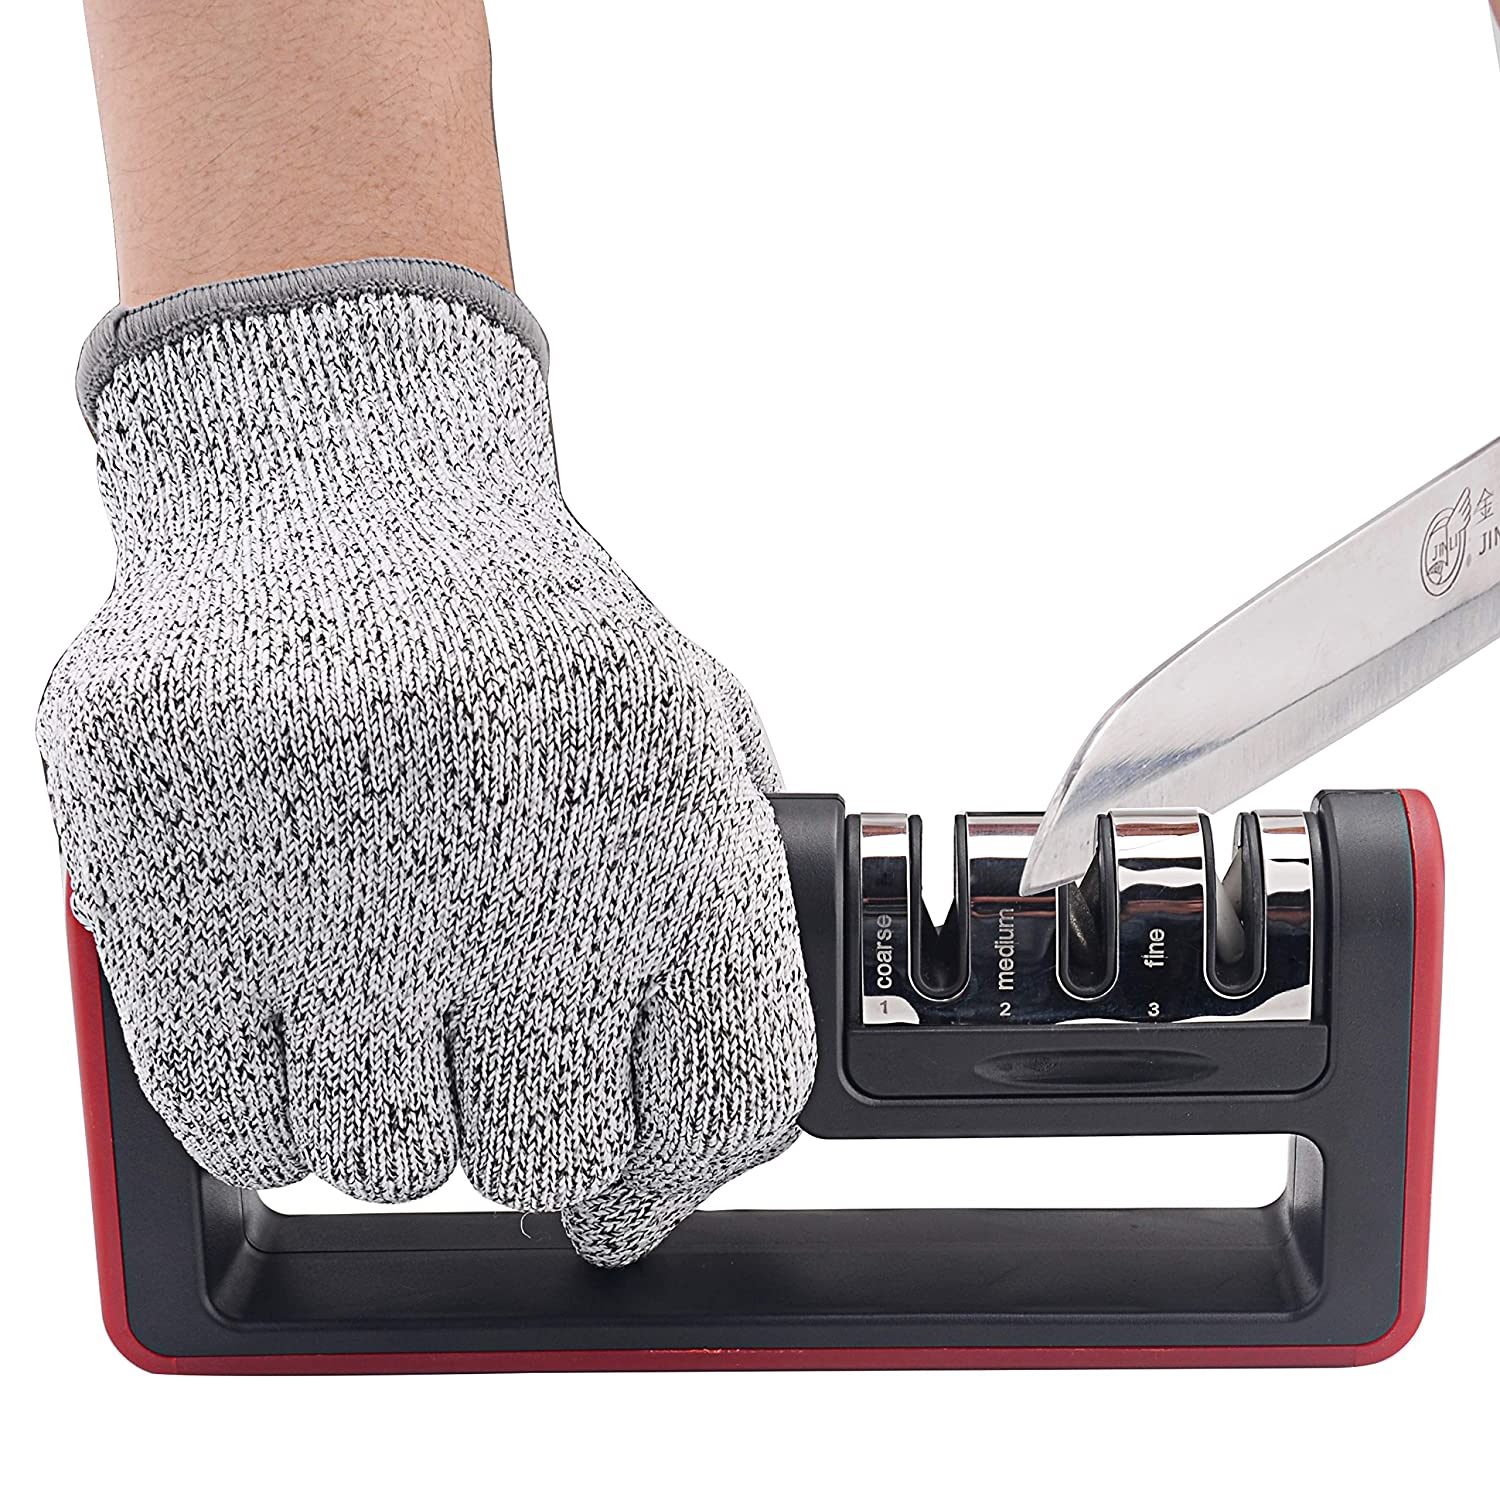 Kitchen Knife Sharpener, 3-Stage Knife Sharpening Tool Helps Repair, Restore and Polish Blades - Reveal a Razor-sharp Blade, (Cut-Resistant Glove Included)